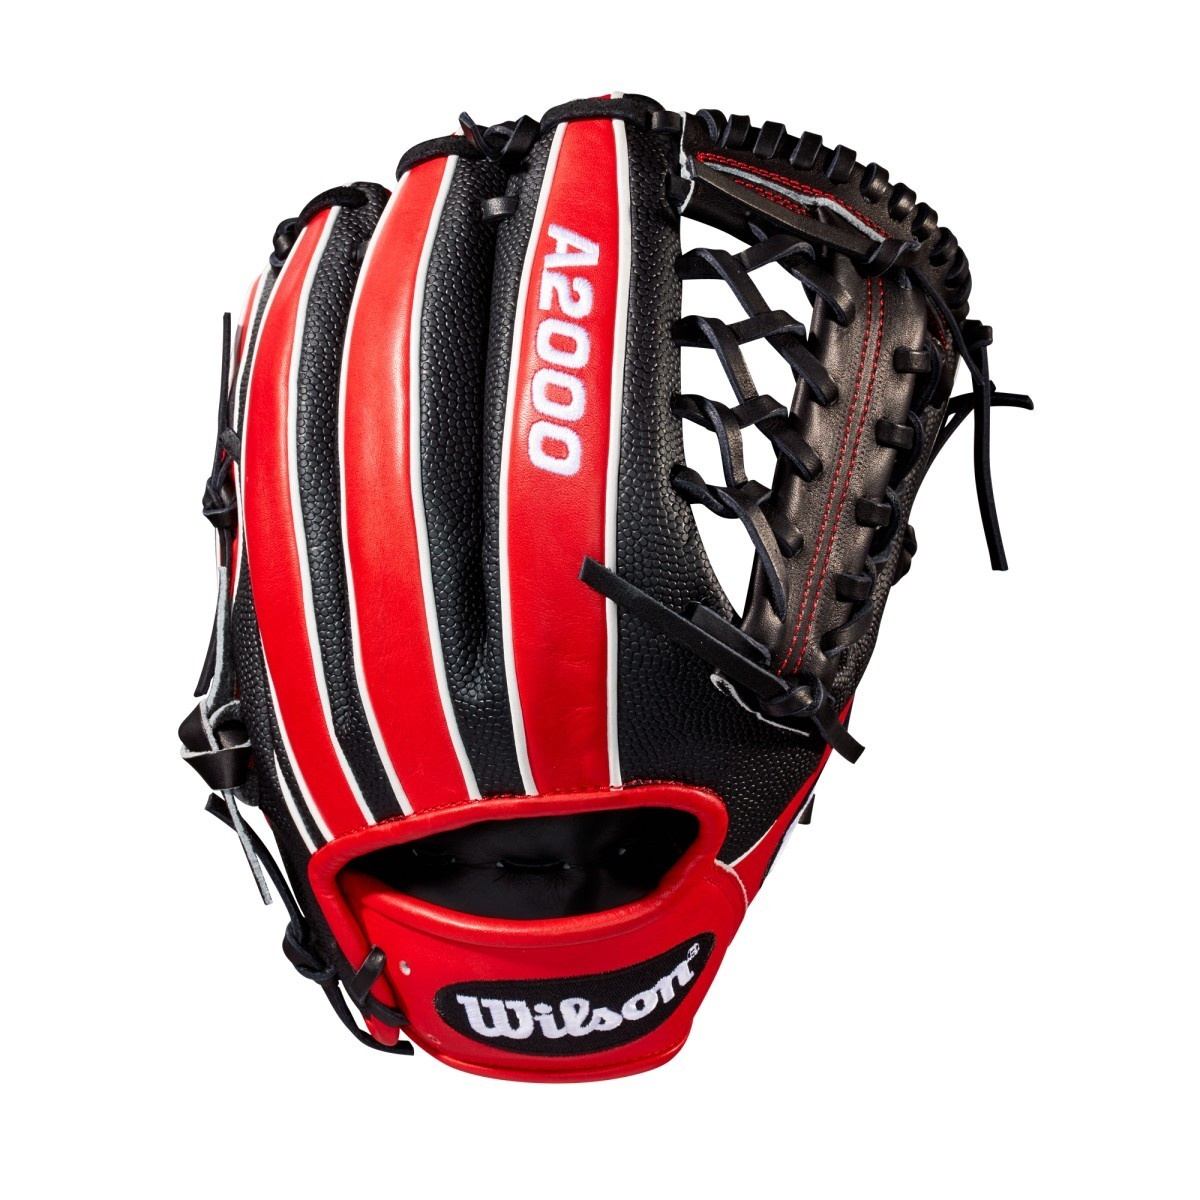 RED/BLACK A2000 1789 GLOVE - MAY 2017